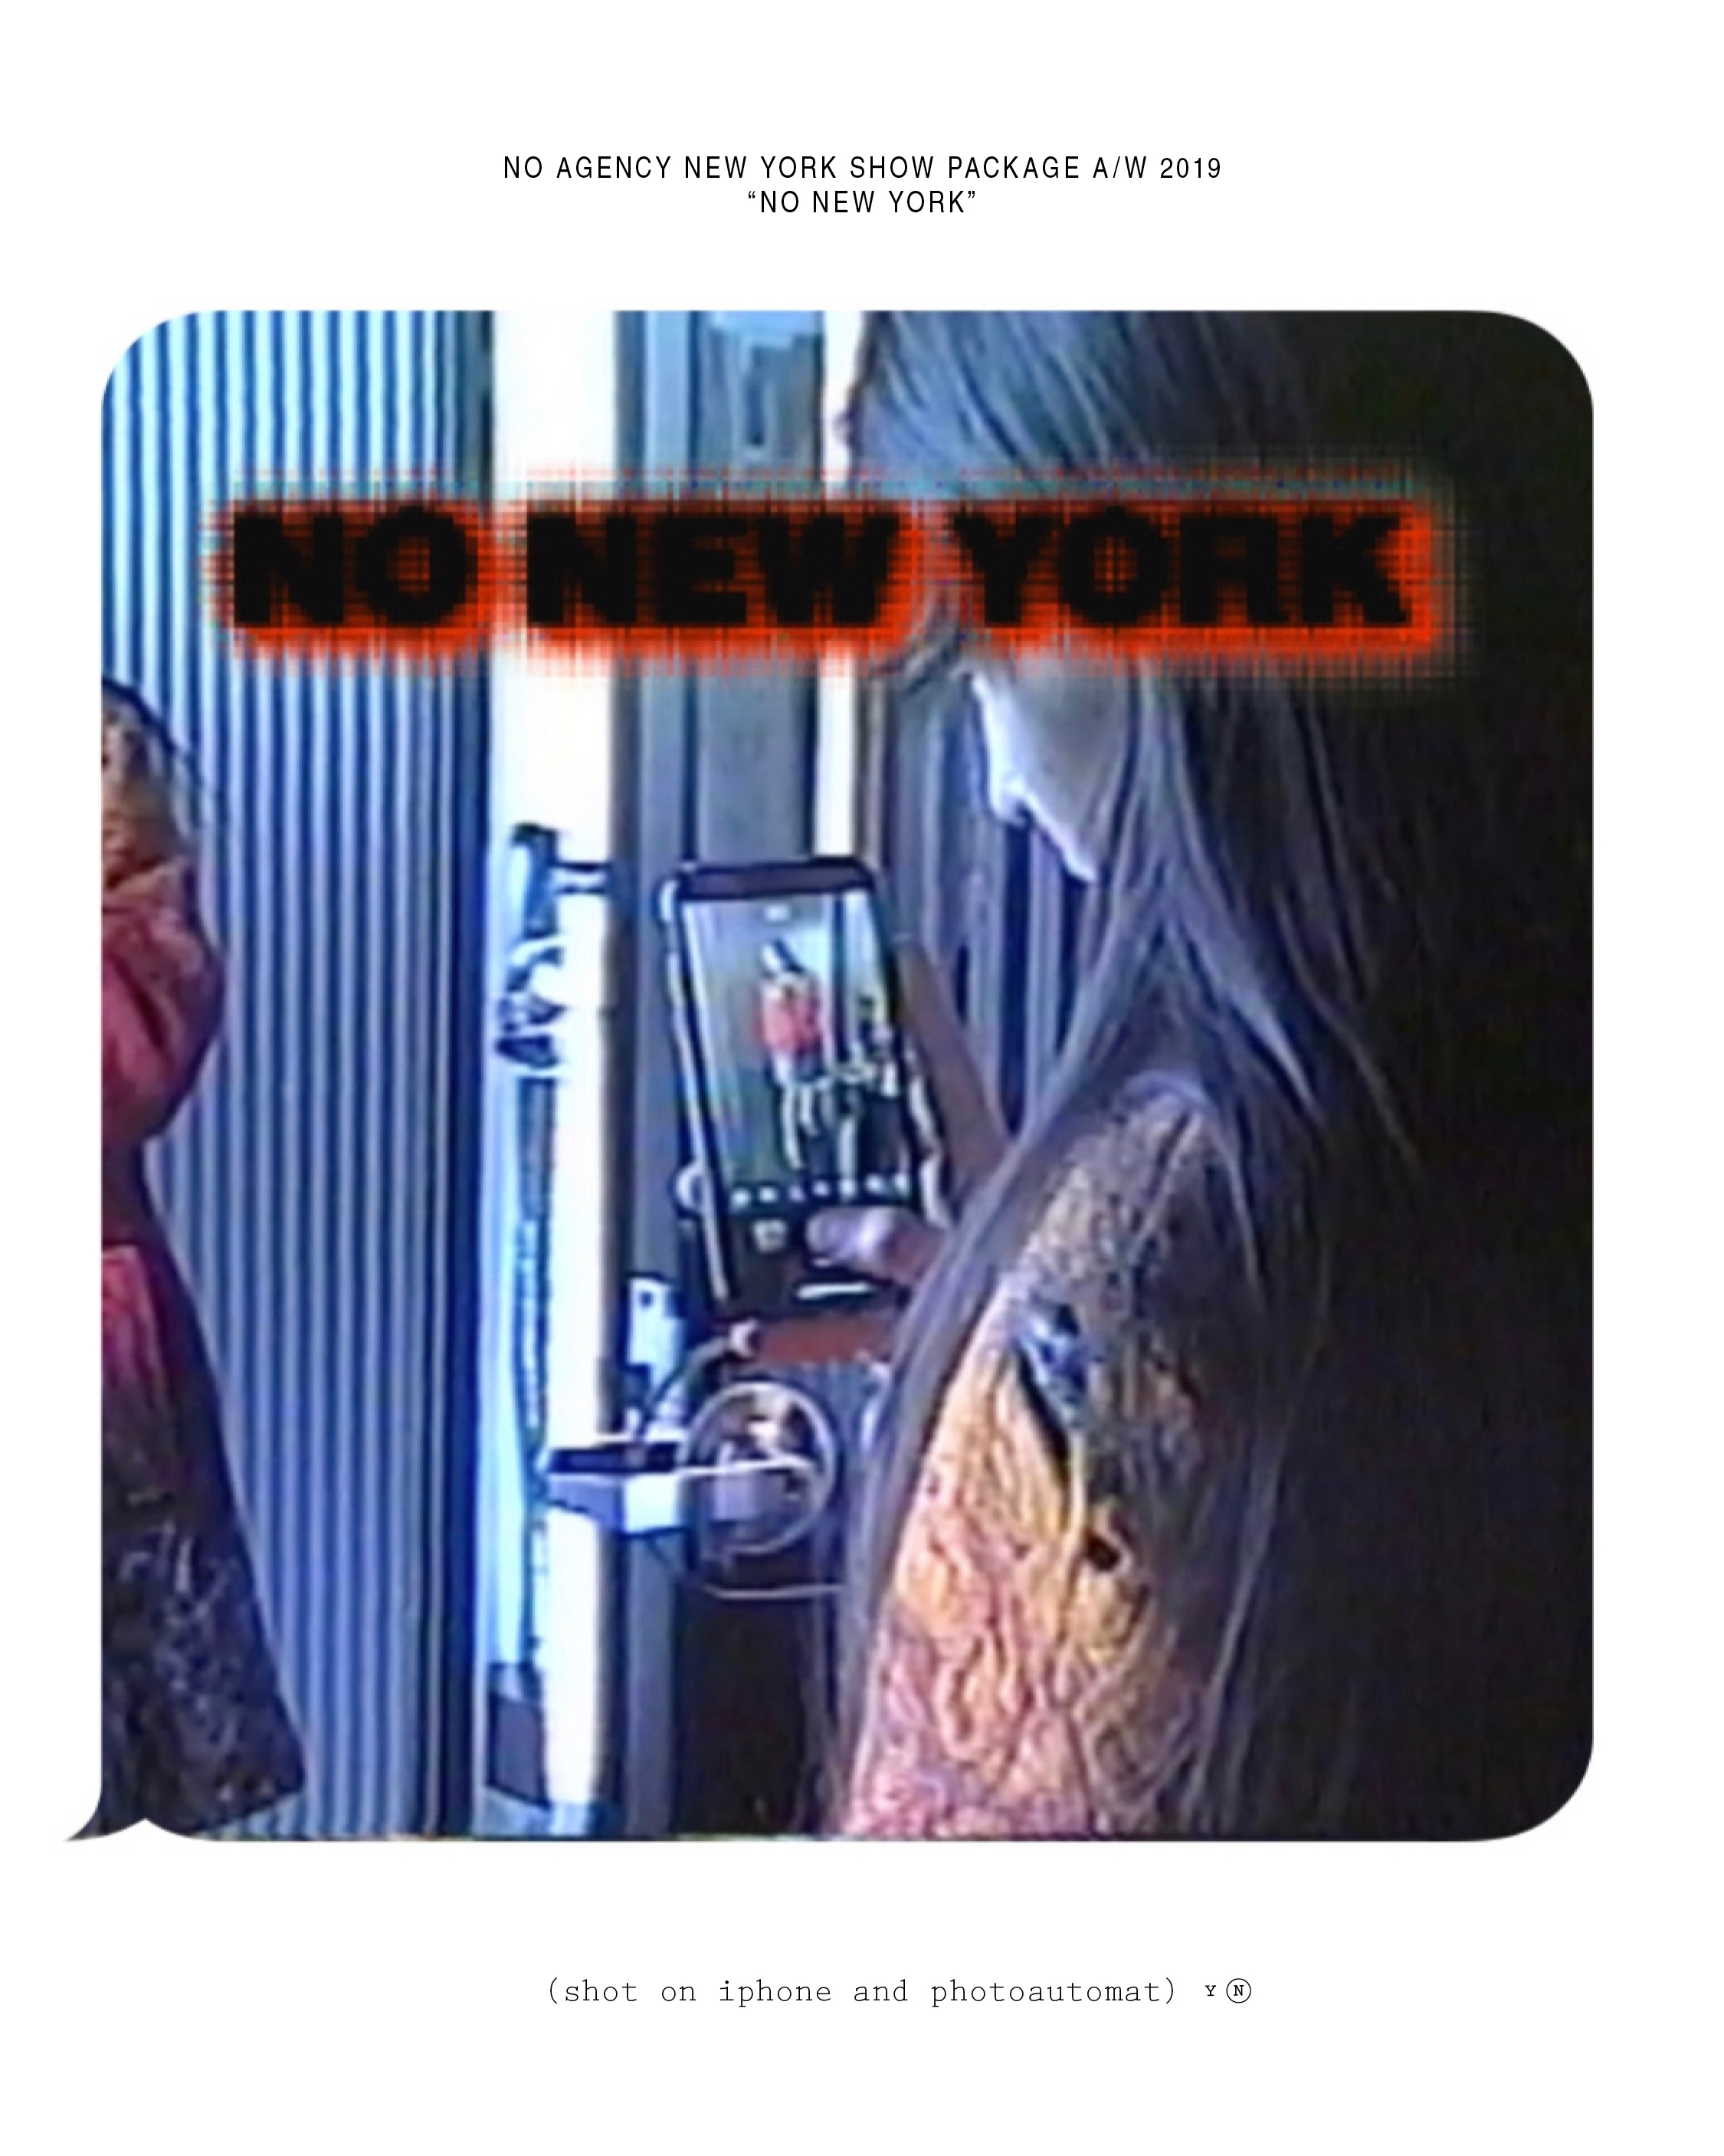 No Agency New York Show Package AW 2019 PT 1 Cover.jpg